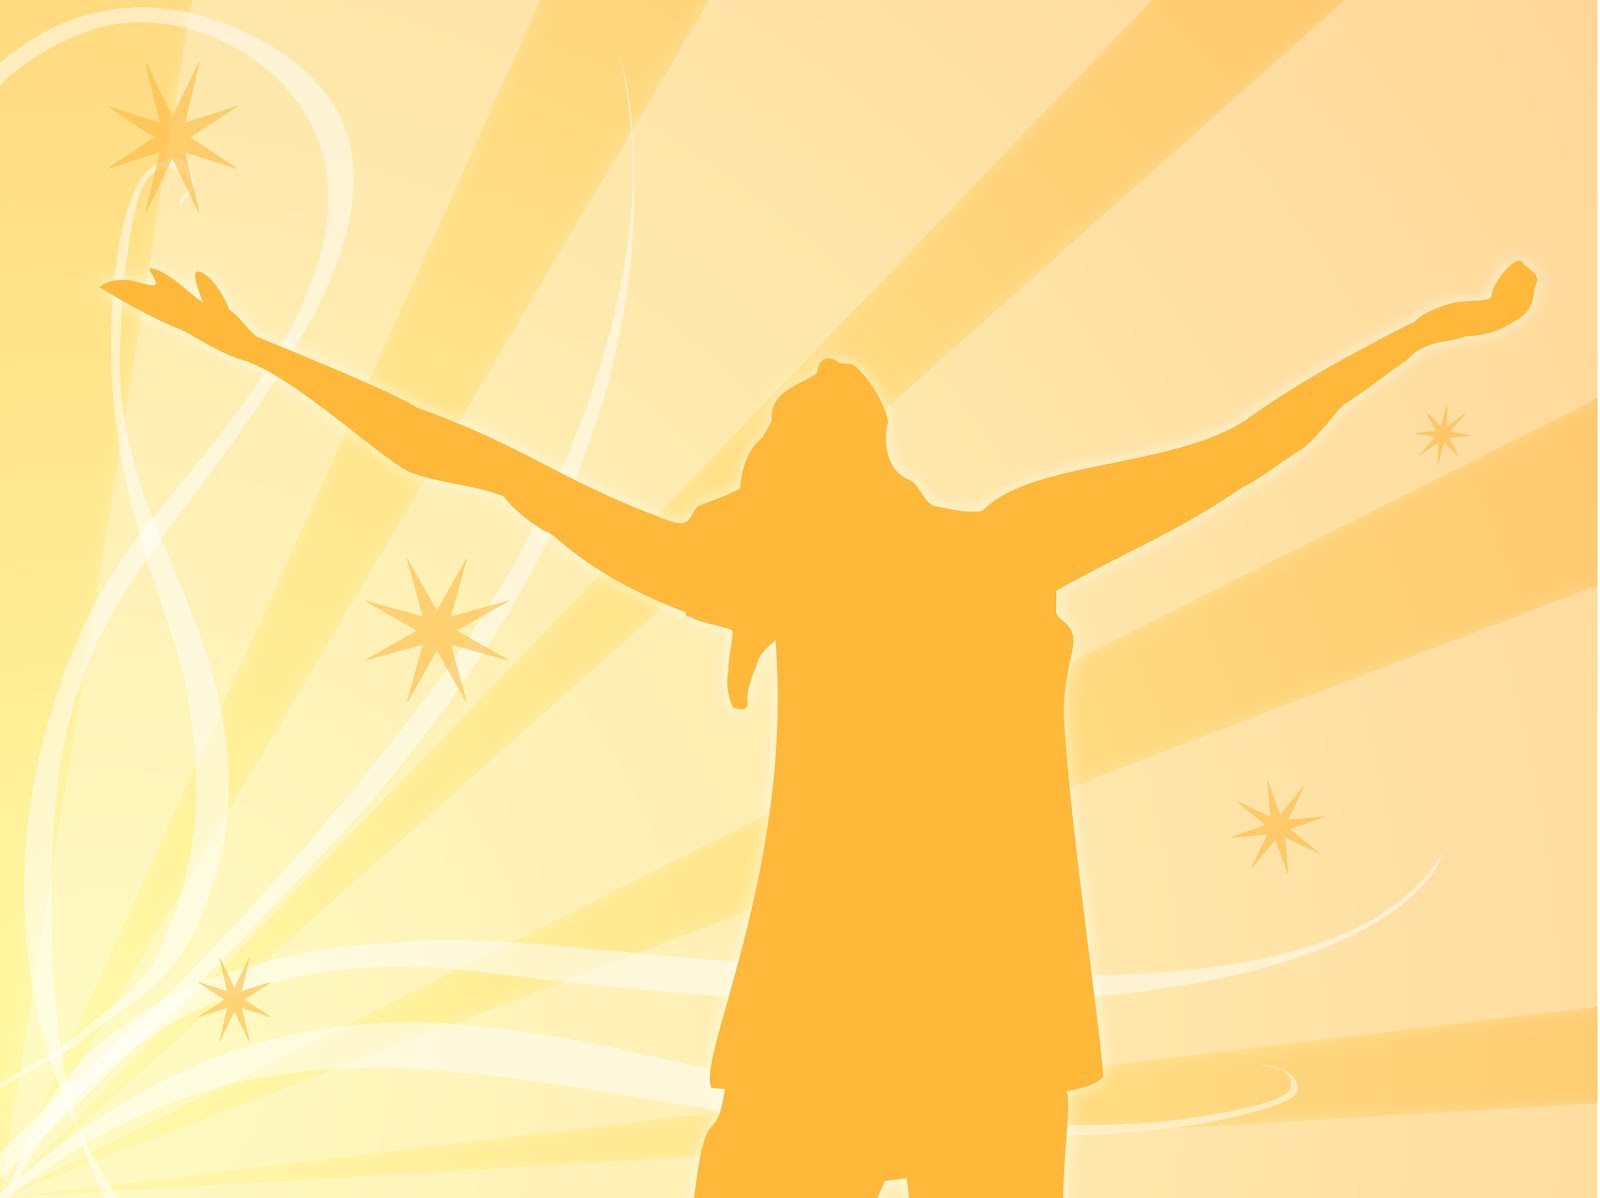 Similiar People Praising God Silhouette Clip Art Keywords